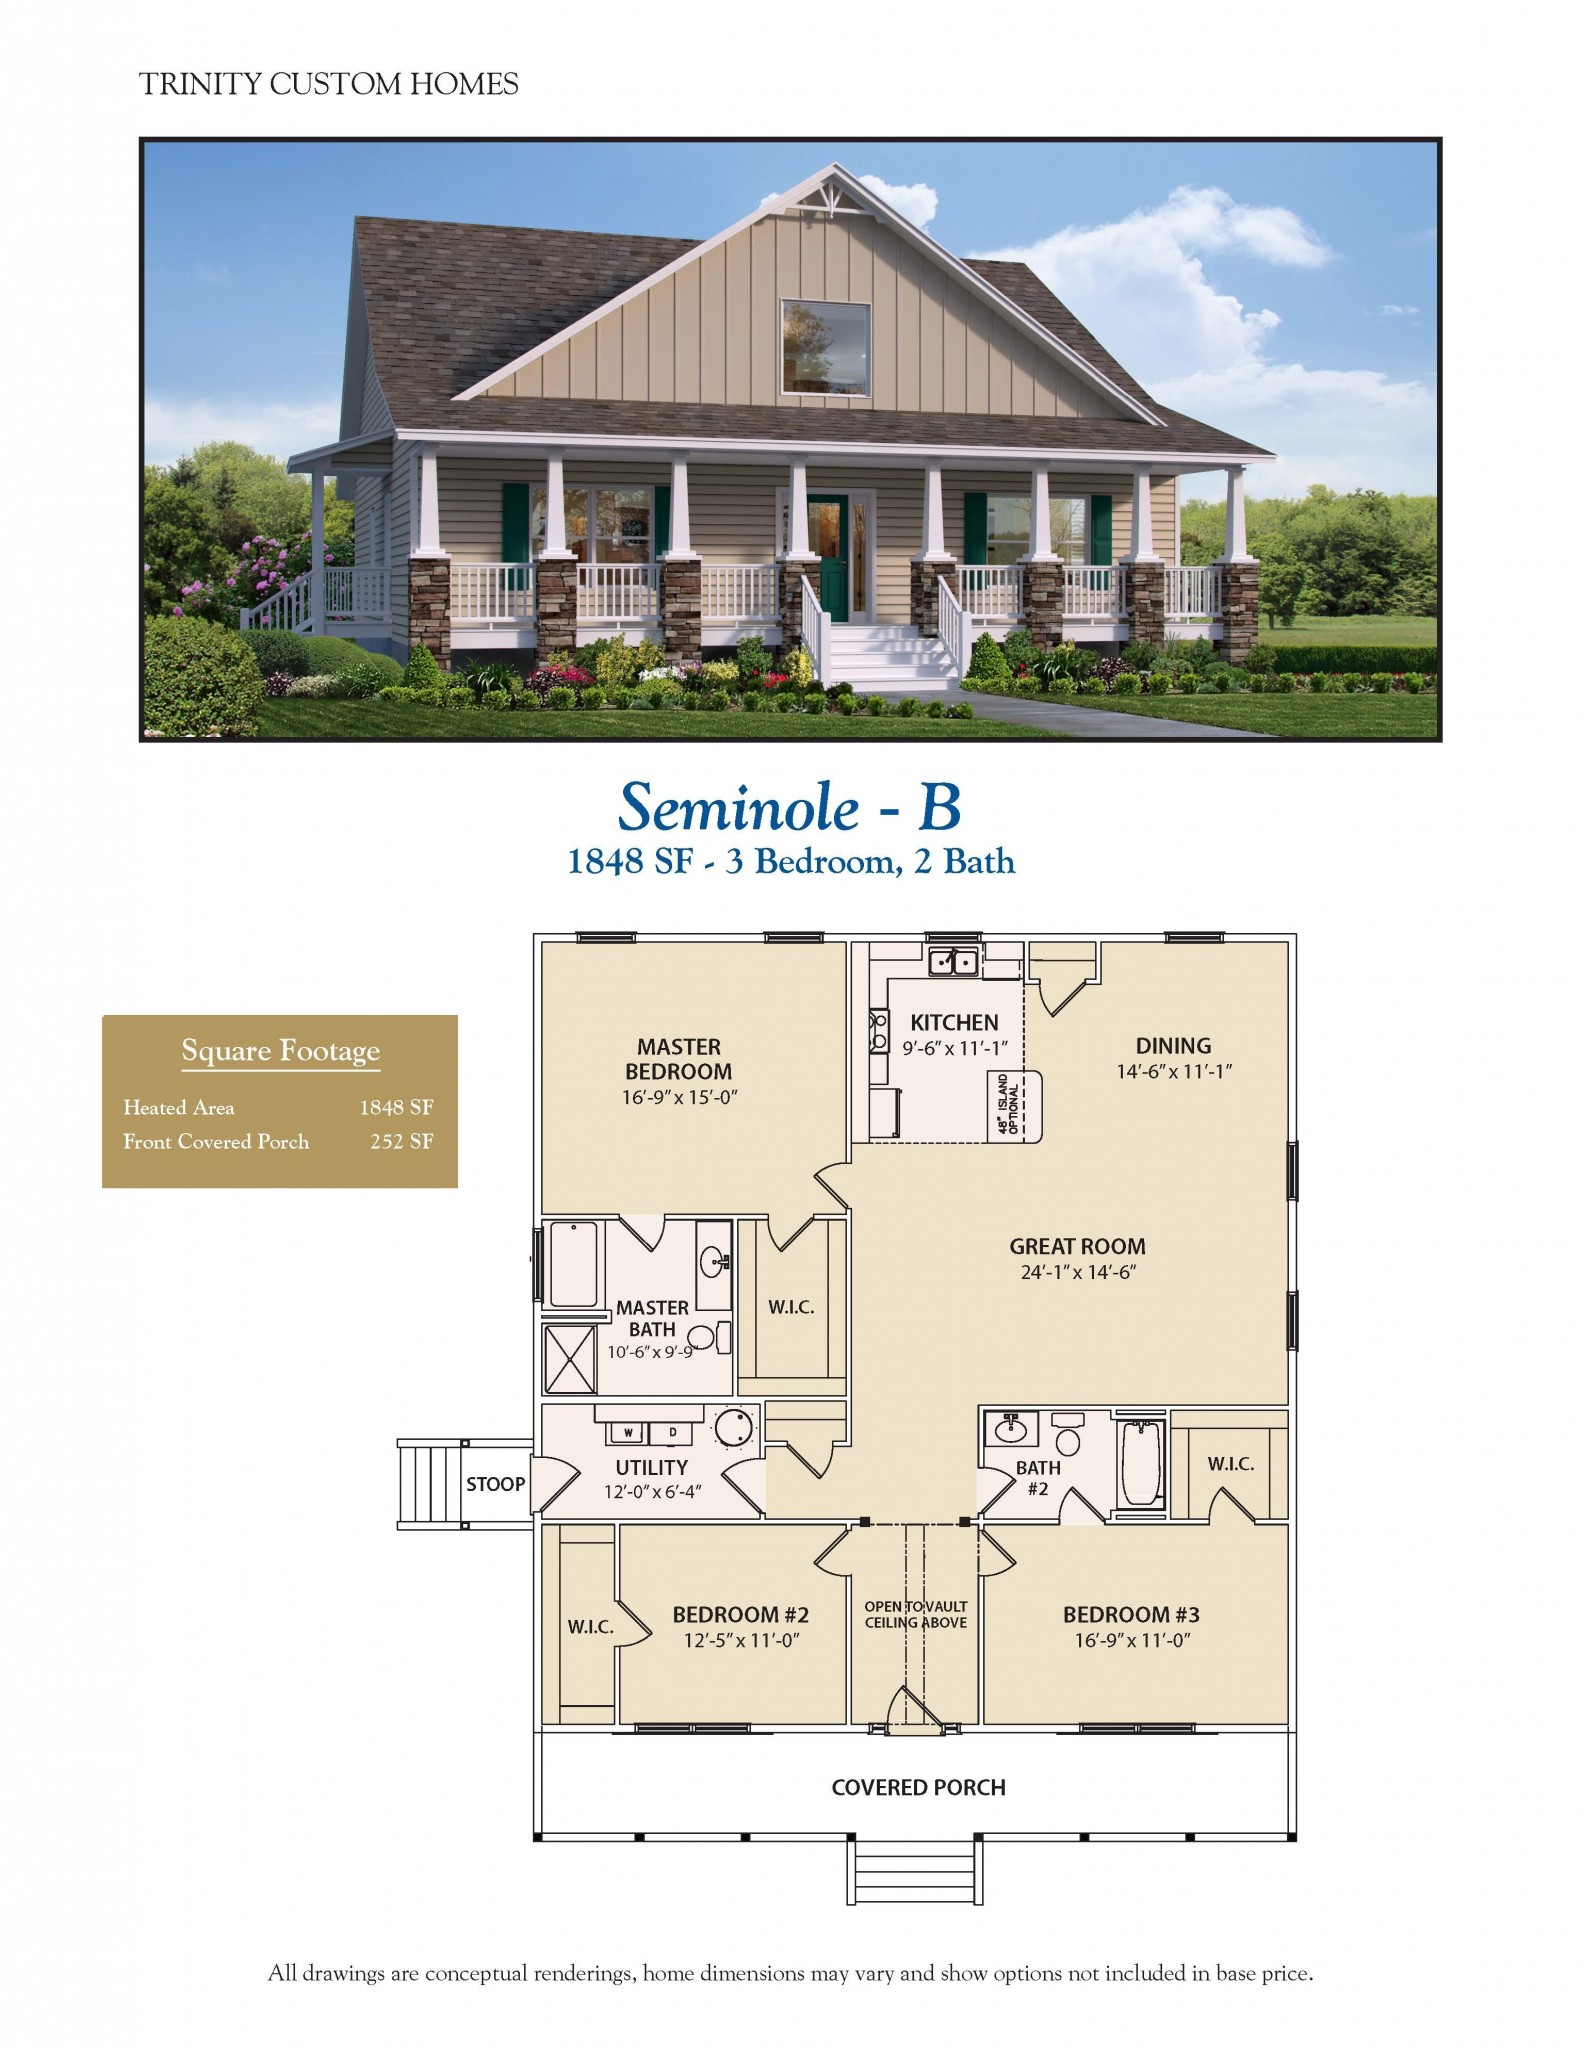 Seminole b welcome to trinity custom homes for Trinity house plans